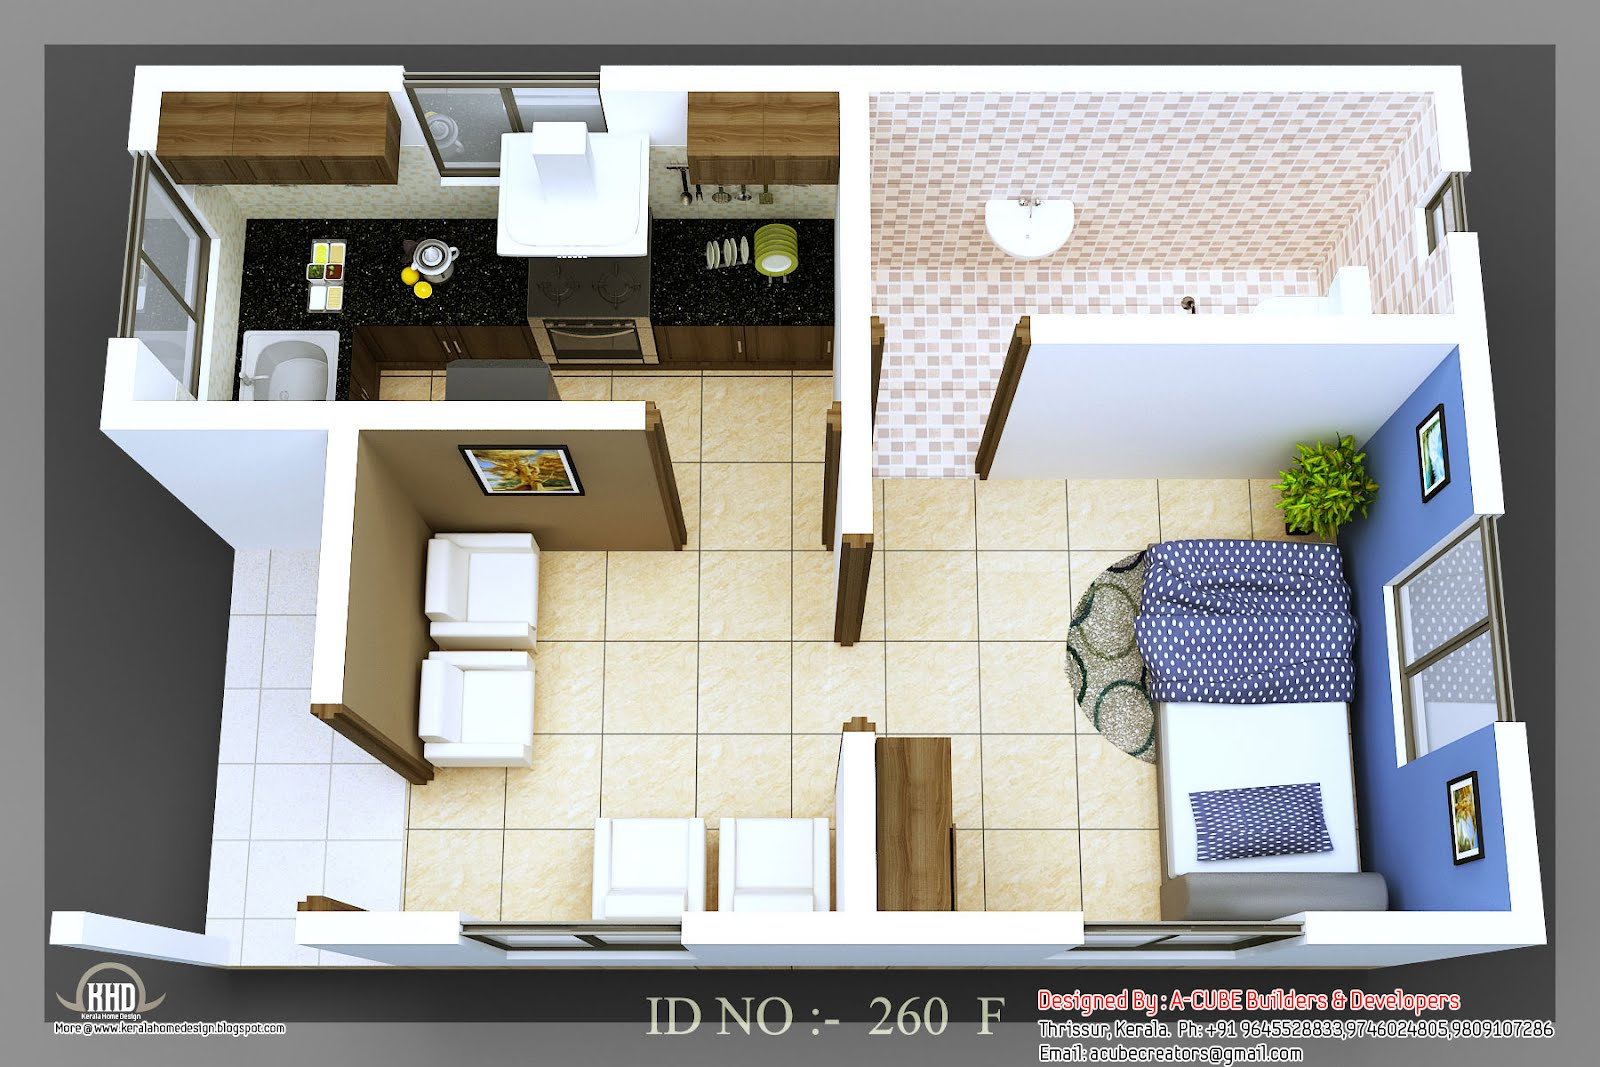 3d isometric views of small house plans kerala home design and floor plans Home design and layout